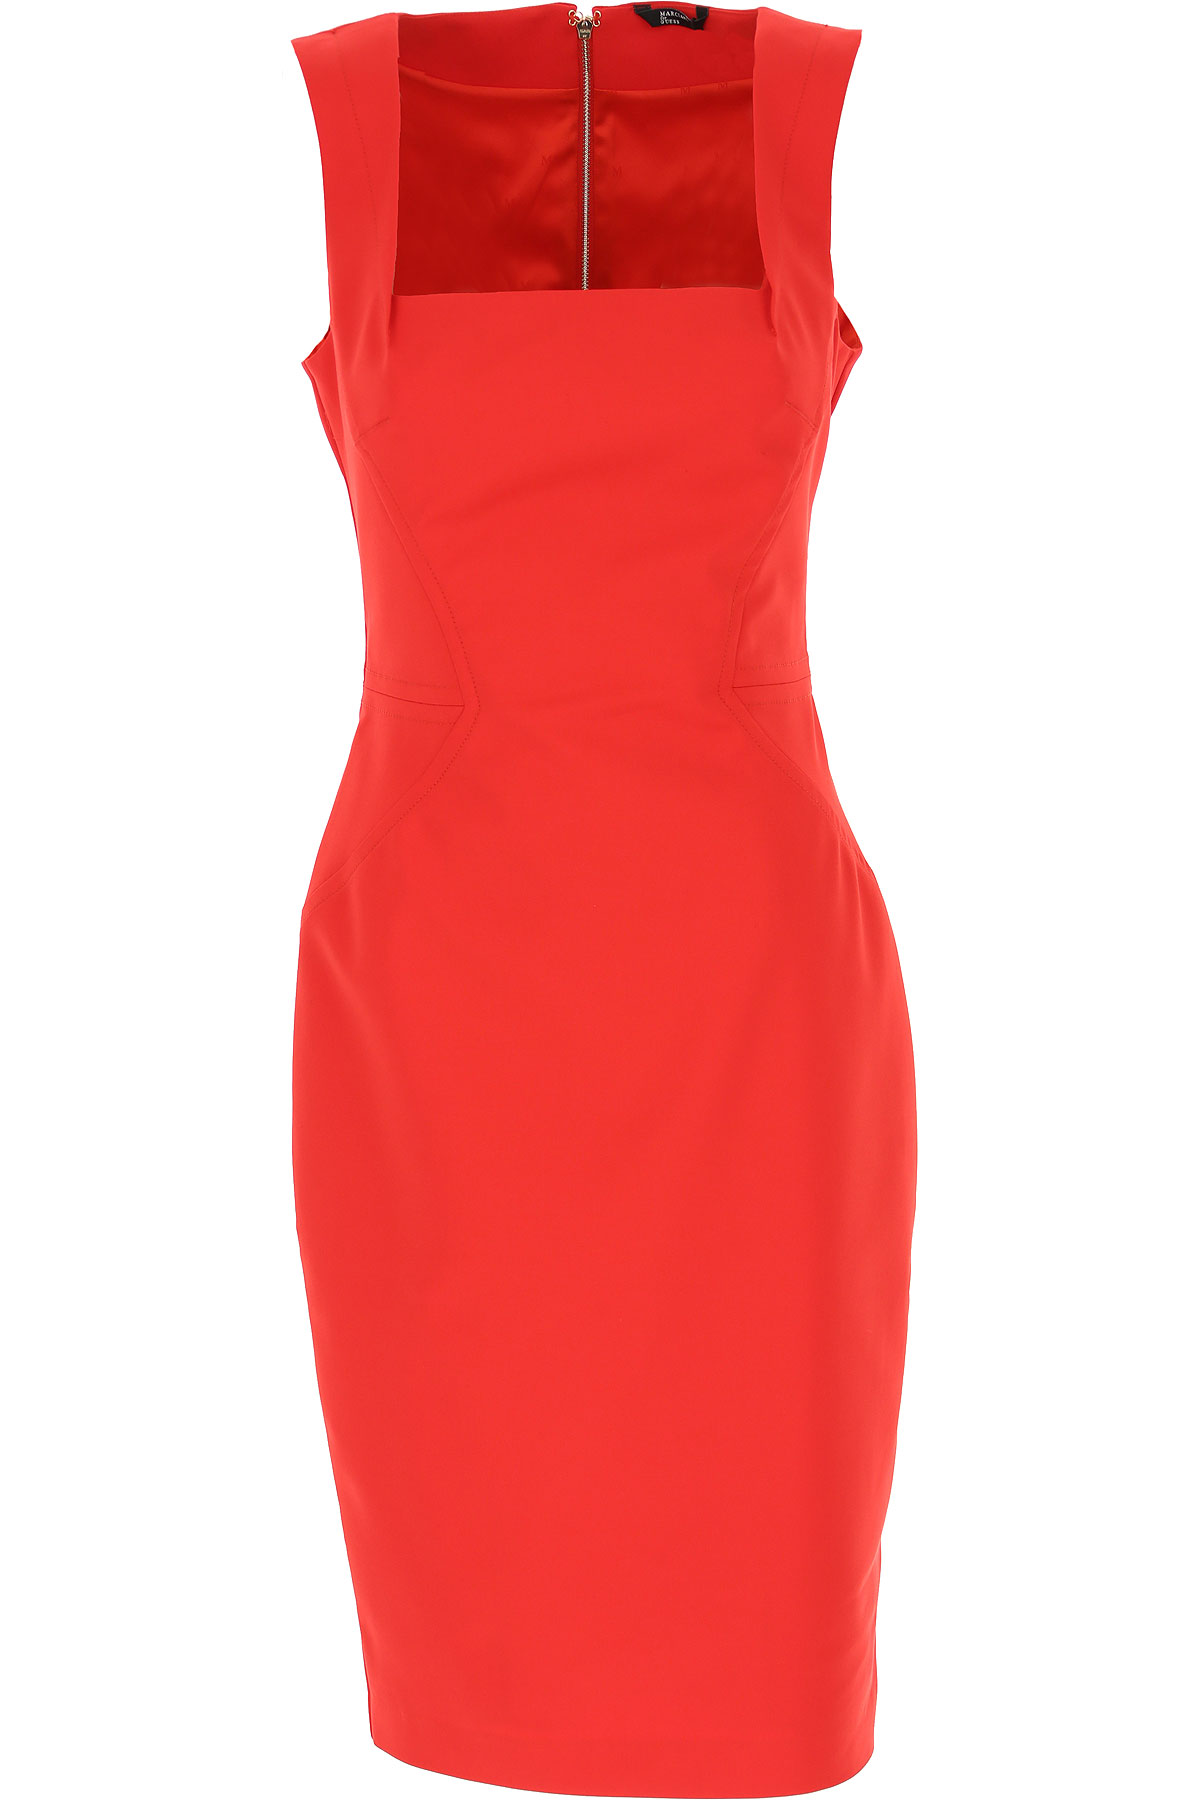 Guess Dress for Women, Evening Cocktail Party On Sale, Red, Cotton, 2019, 4 8